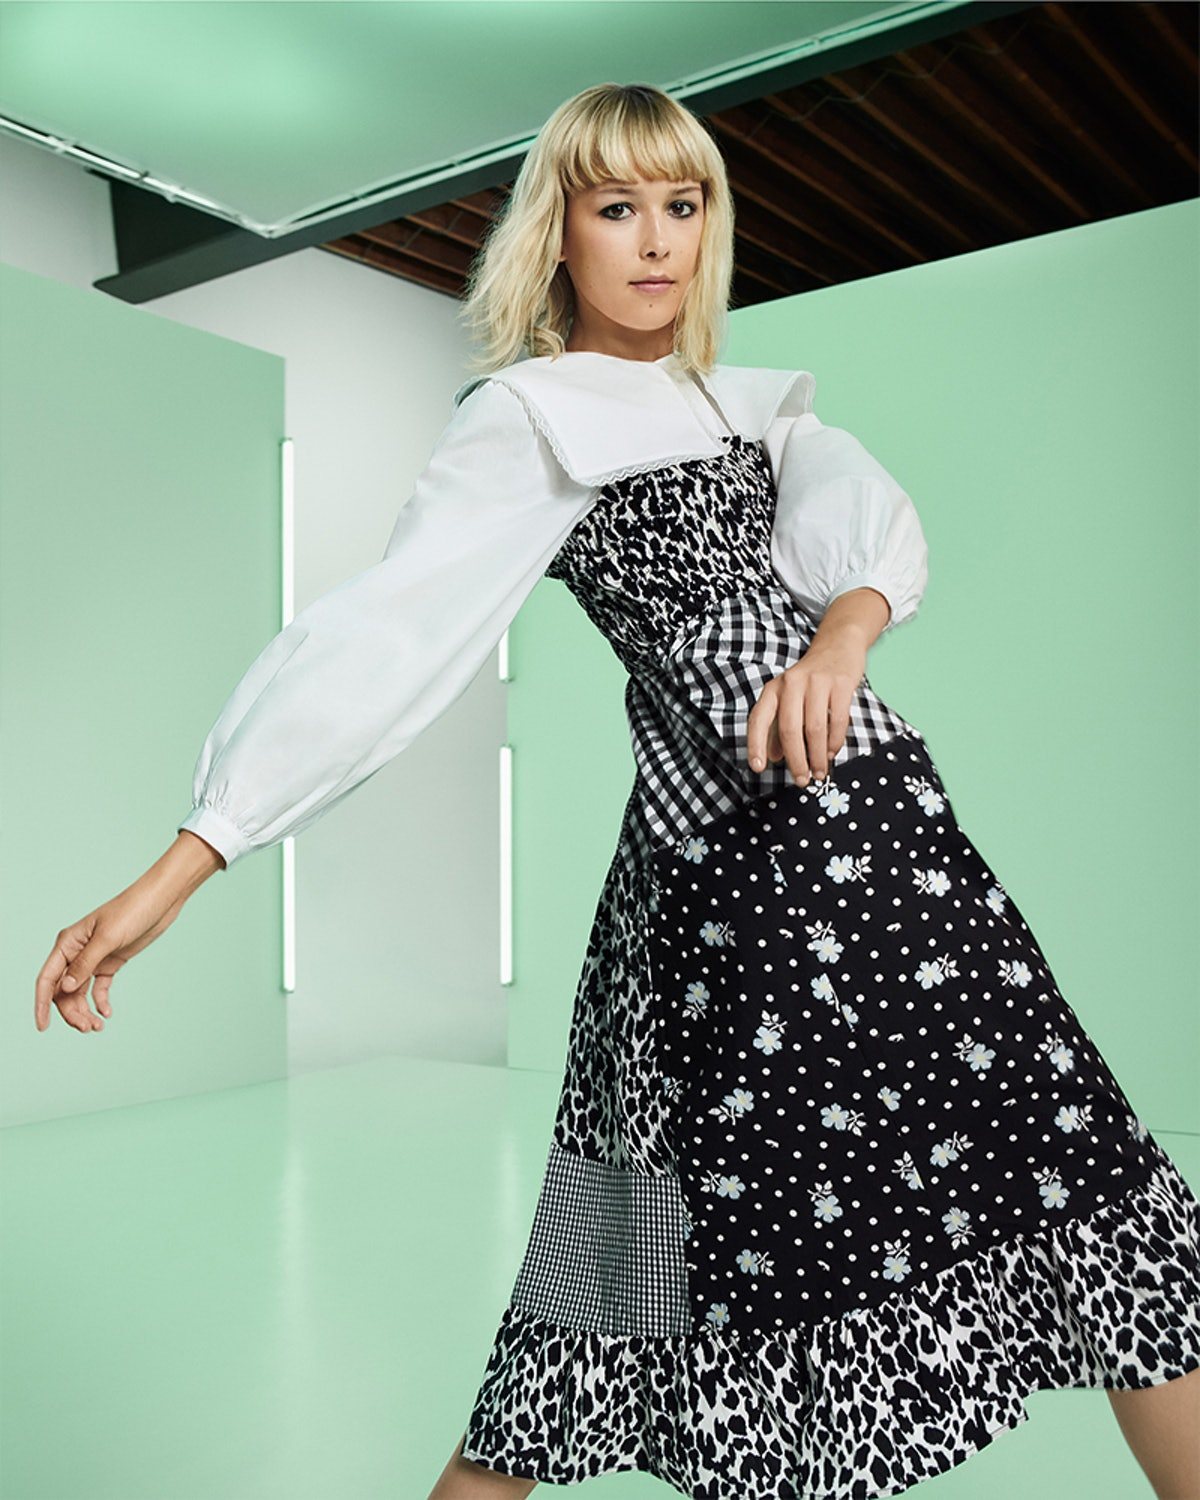 Model wears a look from Sandy Liang's line from Target's Fall Designer Collection.